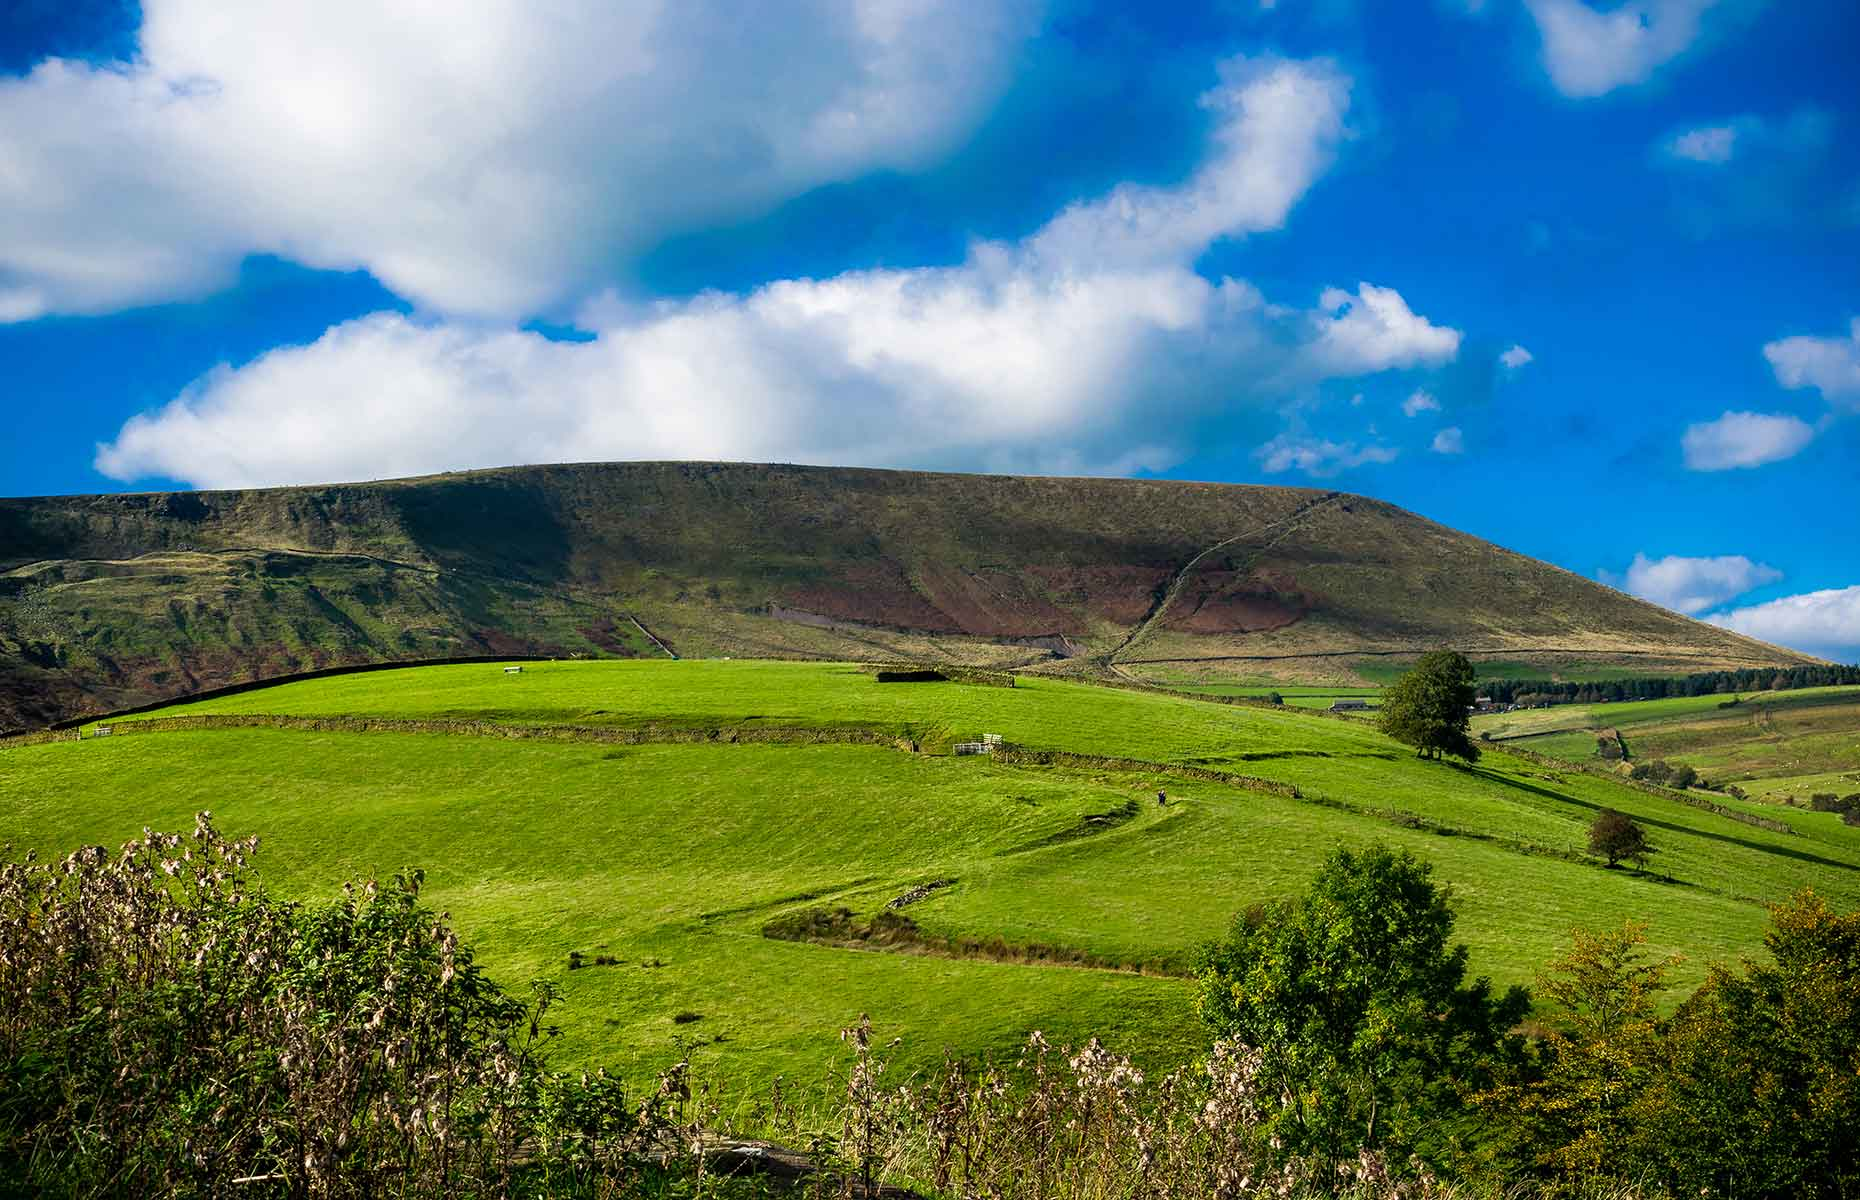 Forest of Bowland (Image: Lukasz Puch/Shutterstock)